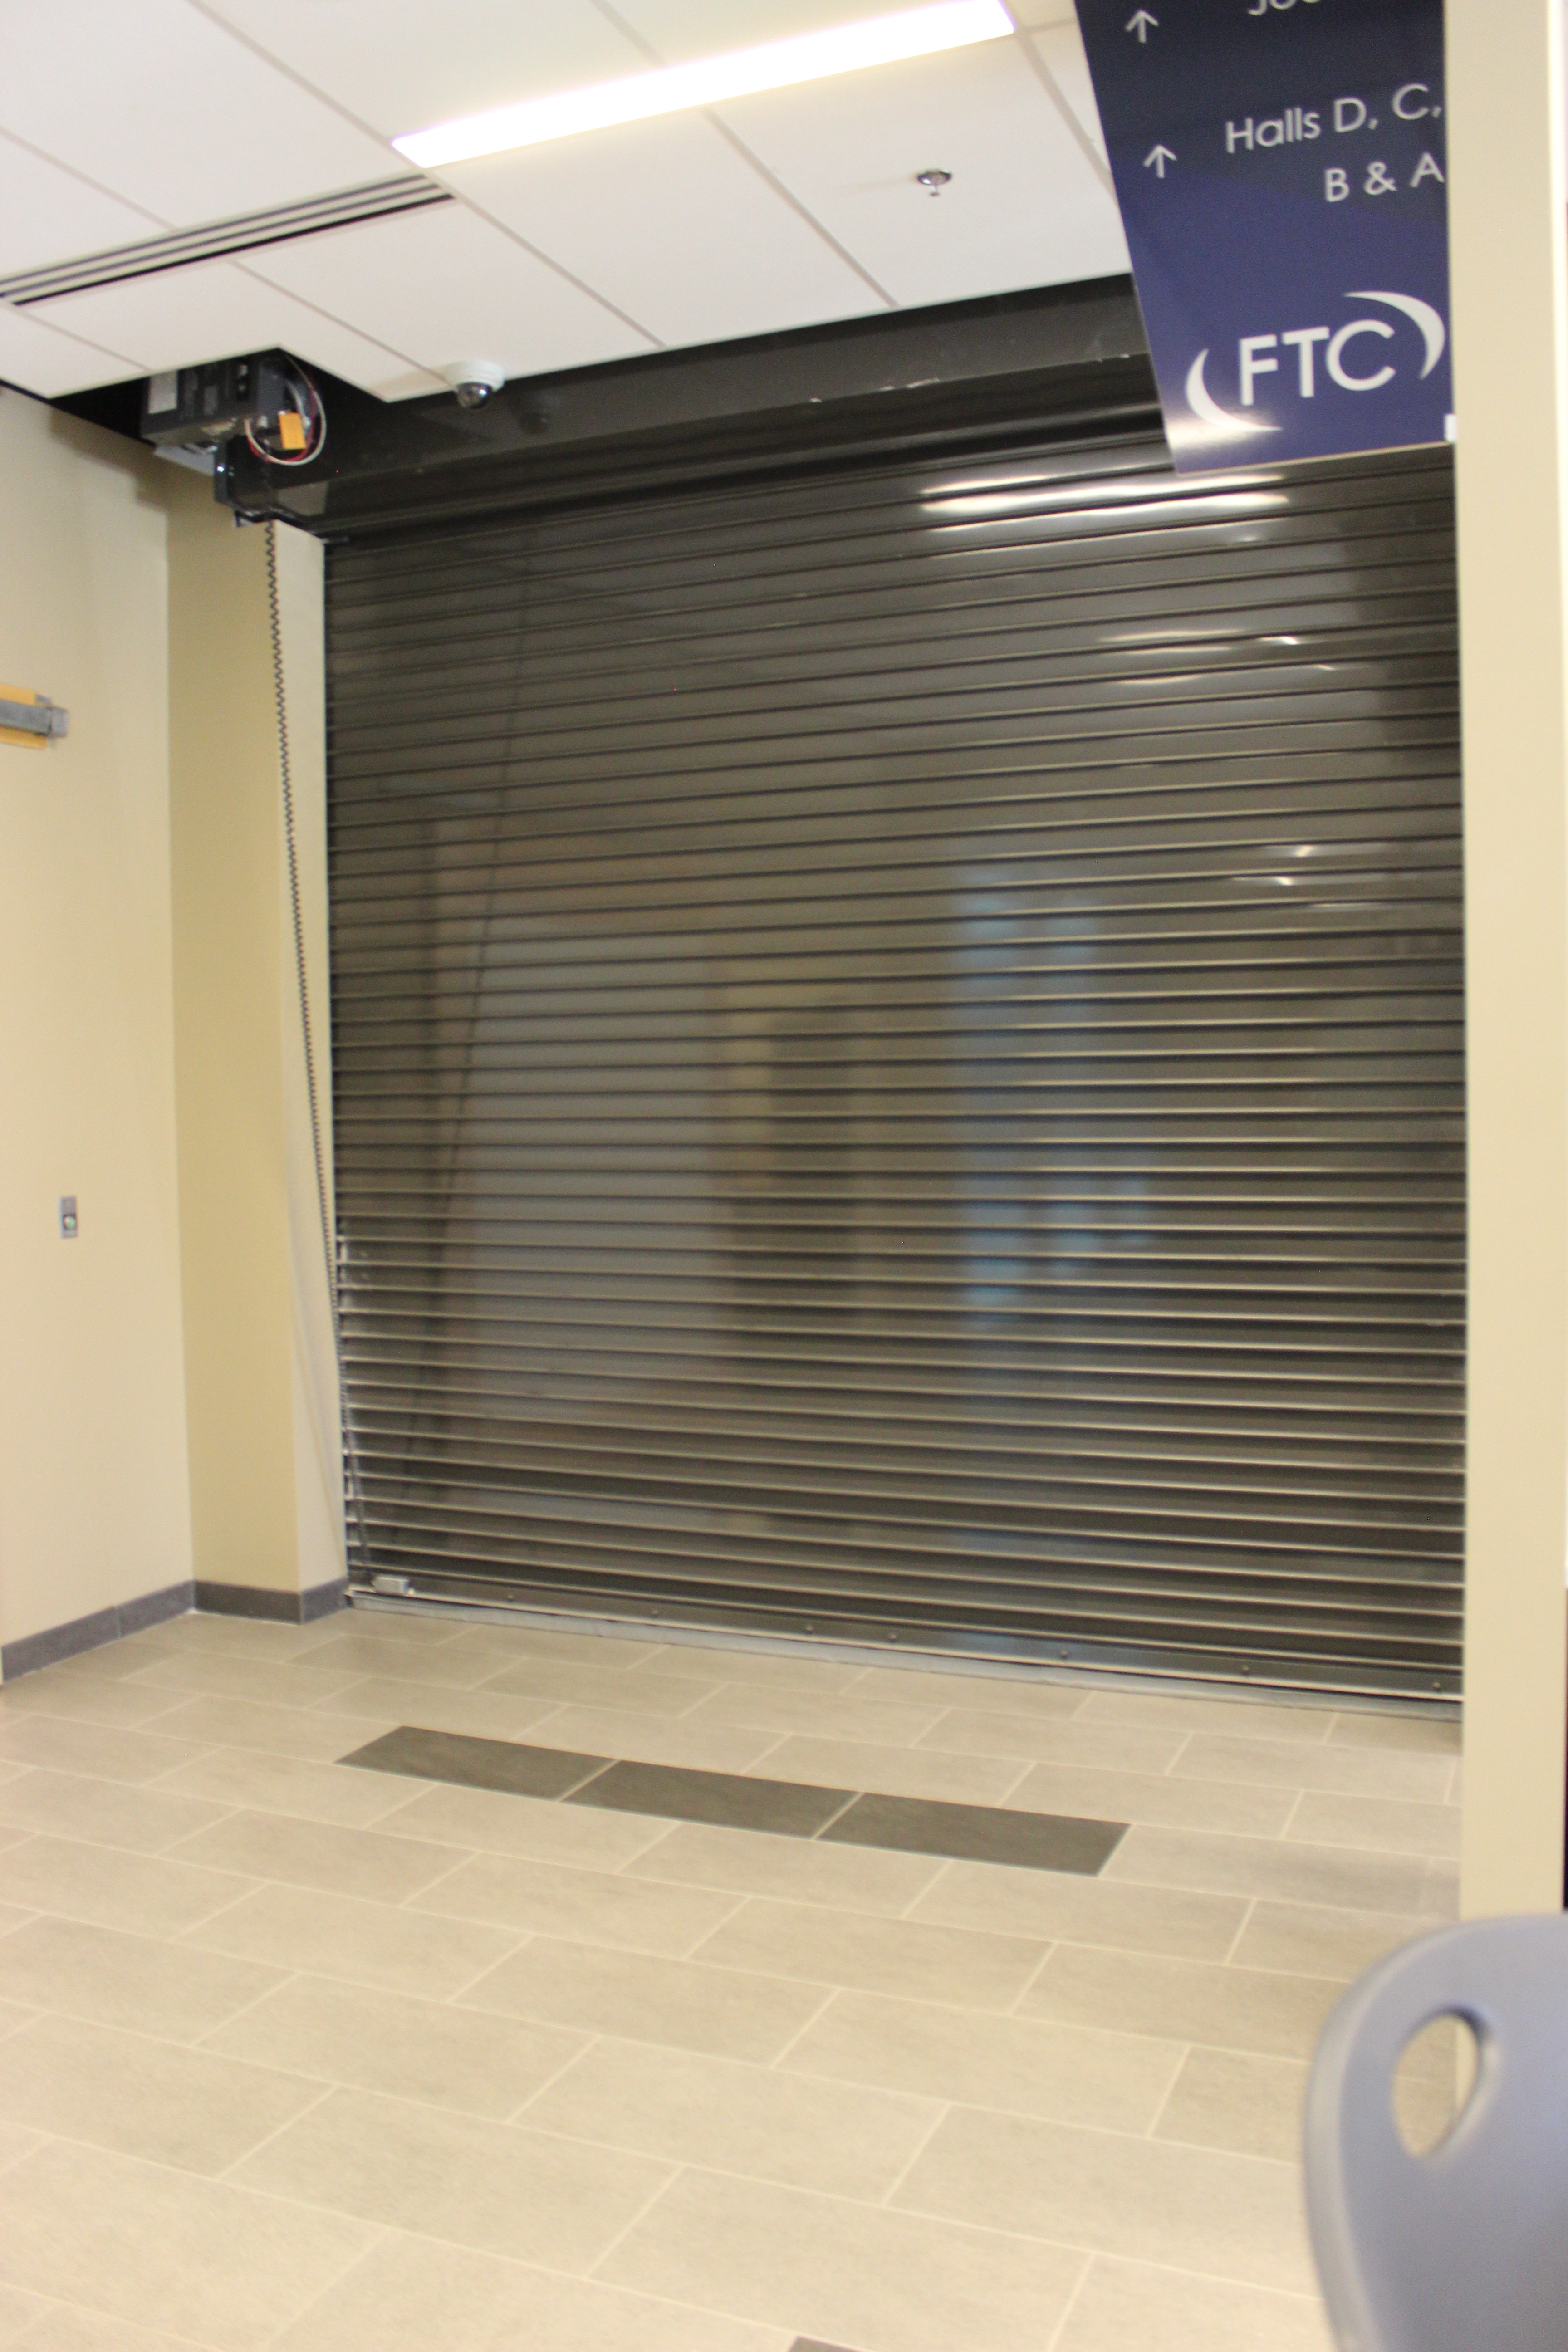 Fire Doors  AlarmGard with coil and op showing